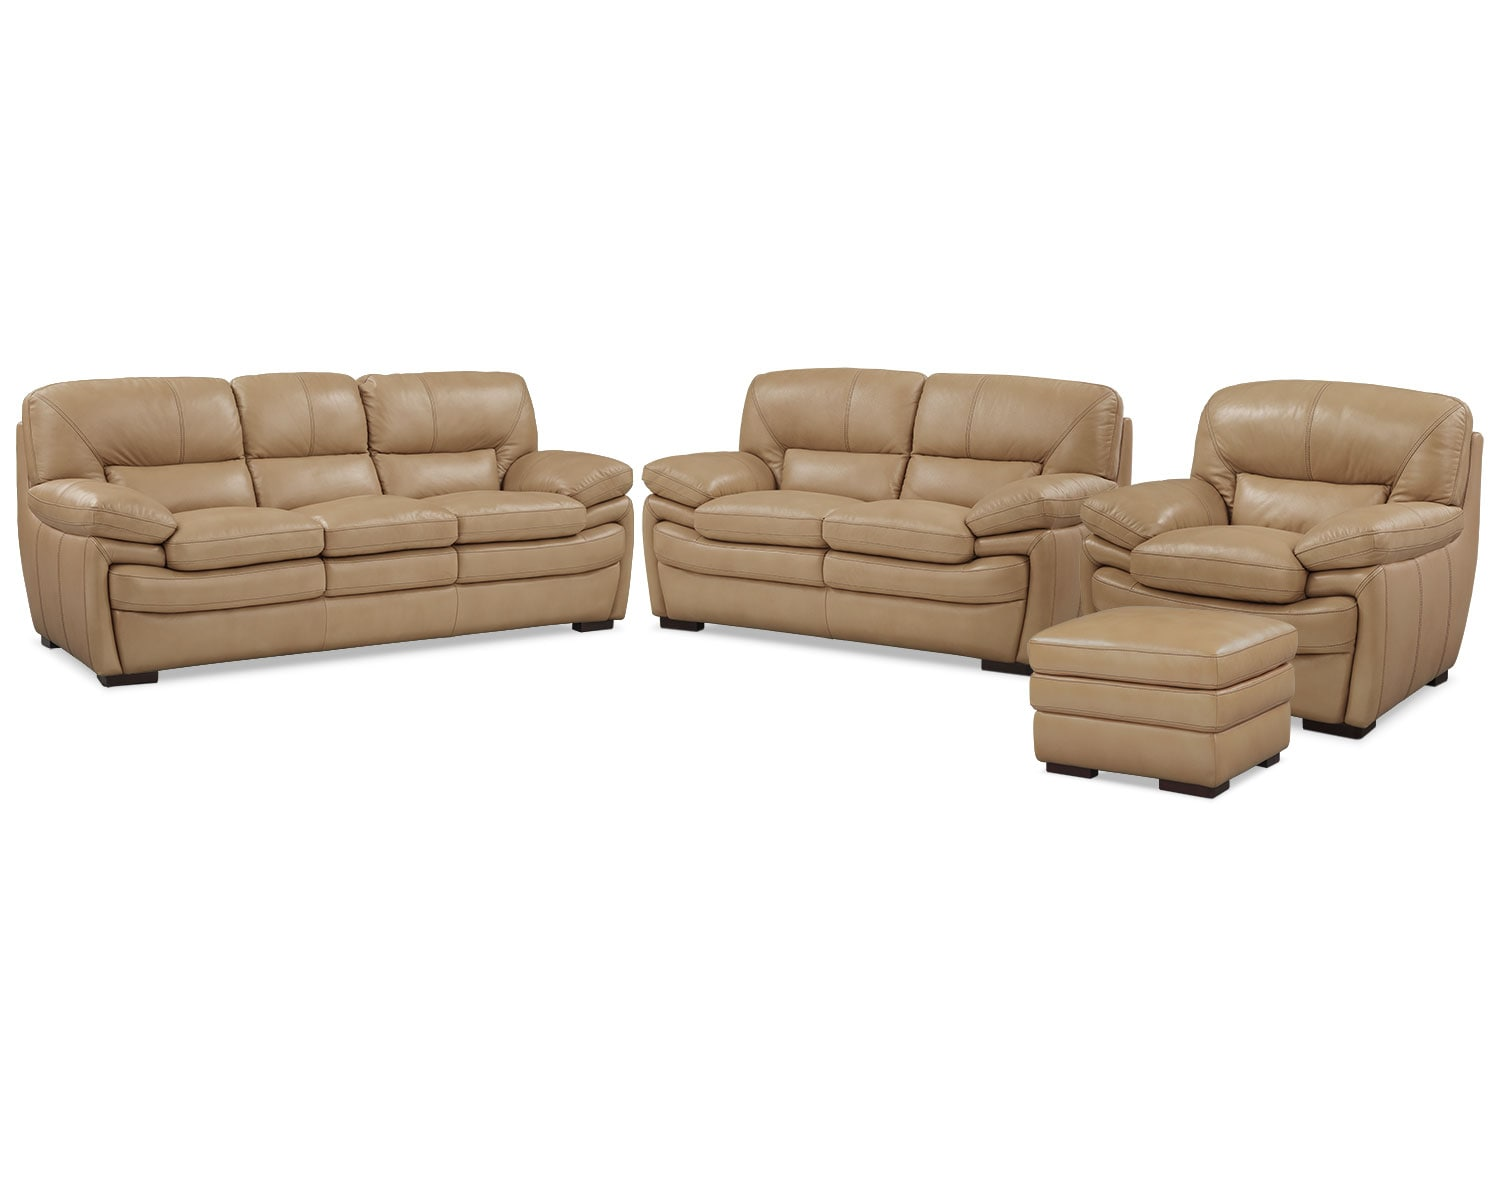 The Peyton Taupe Living Room Collection